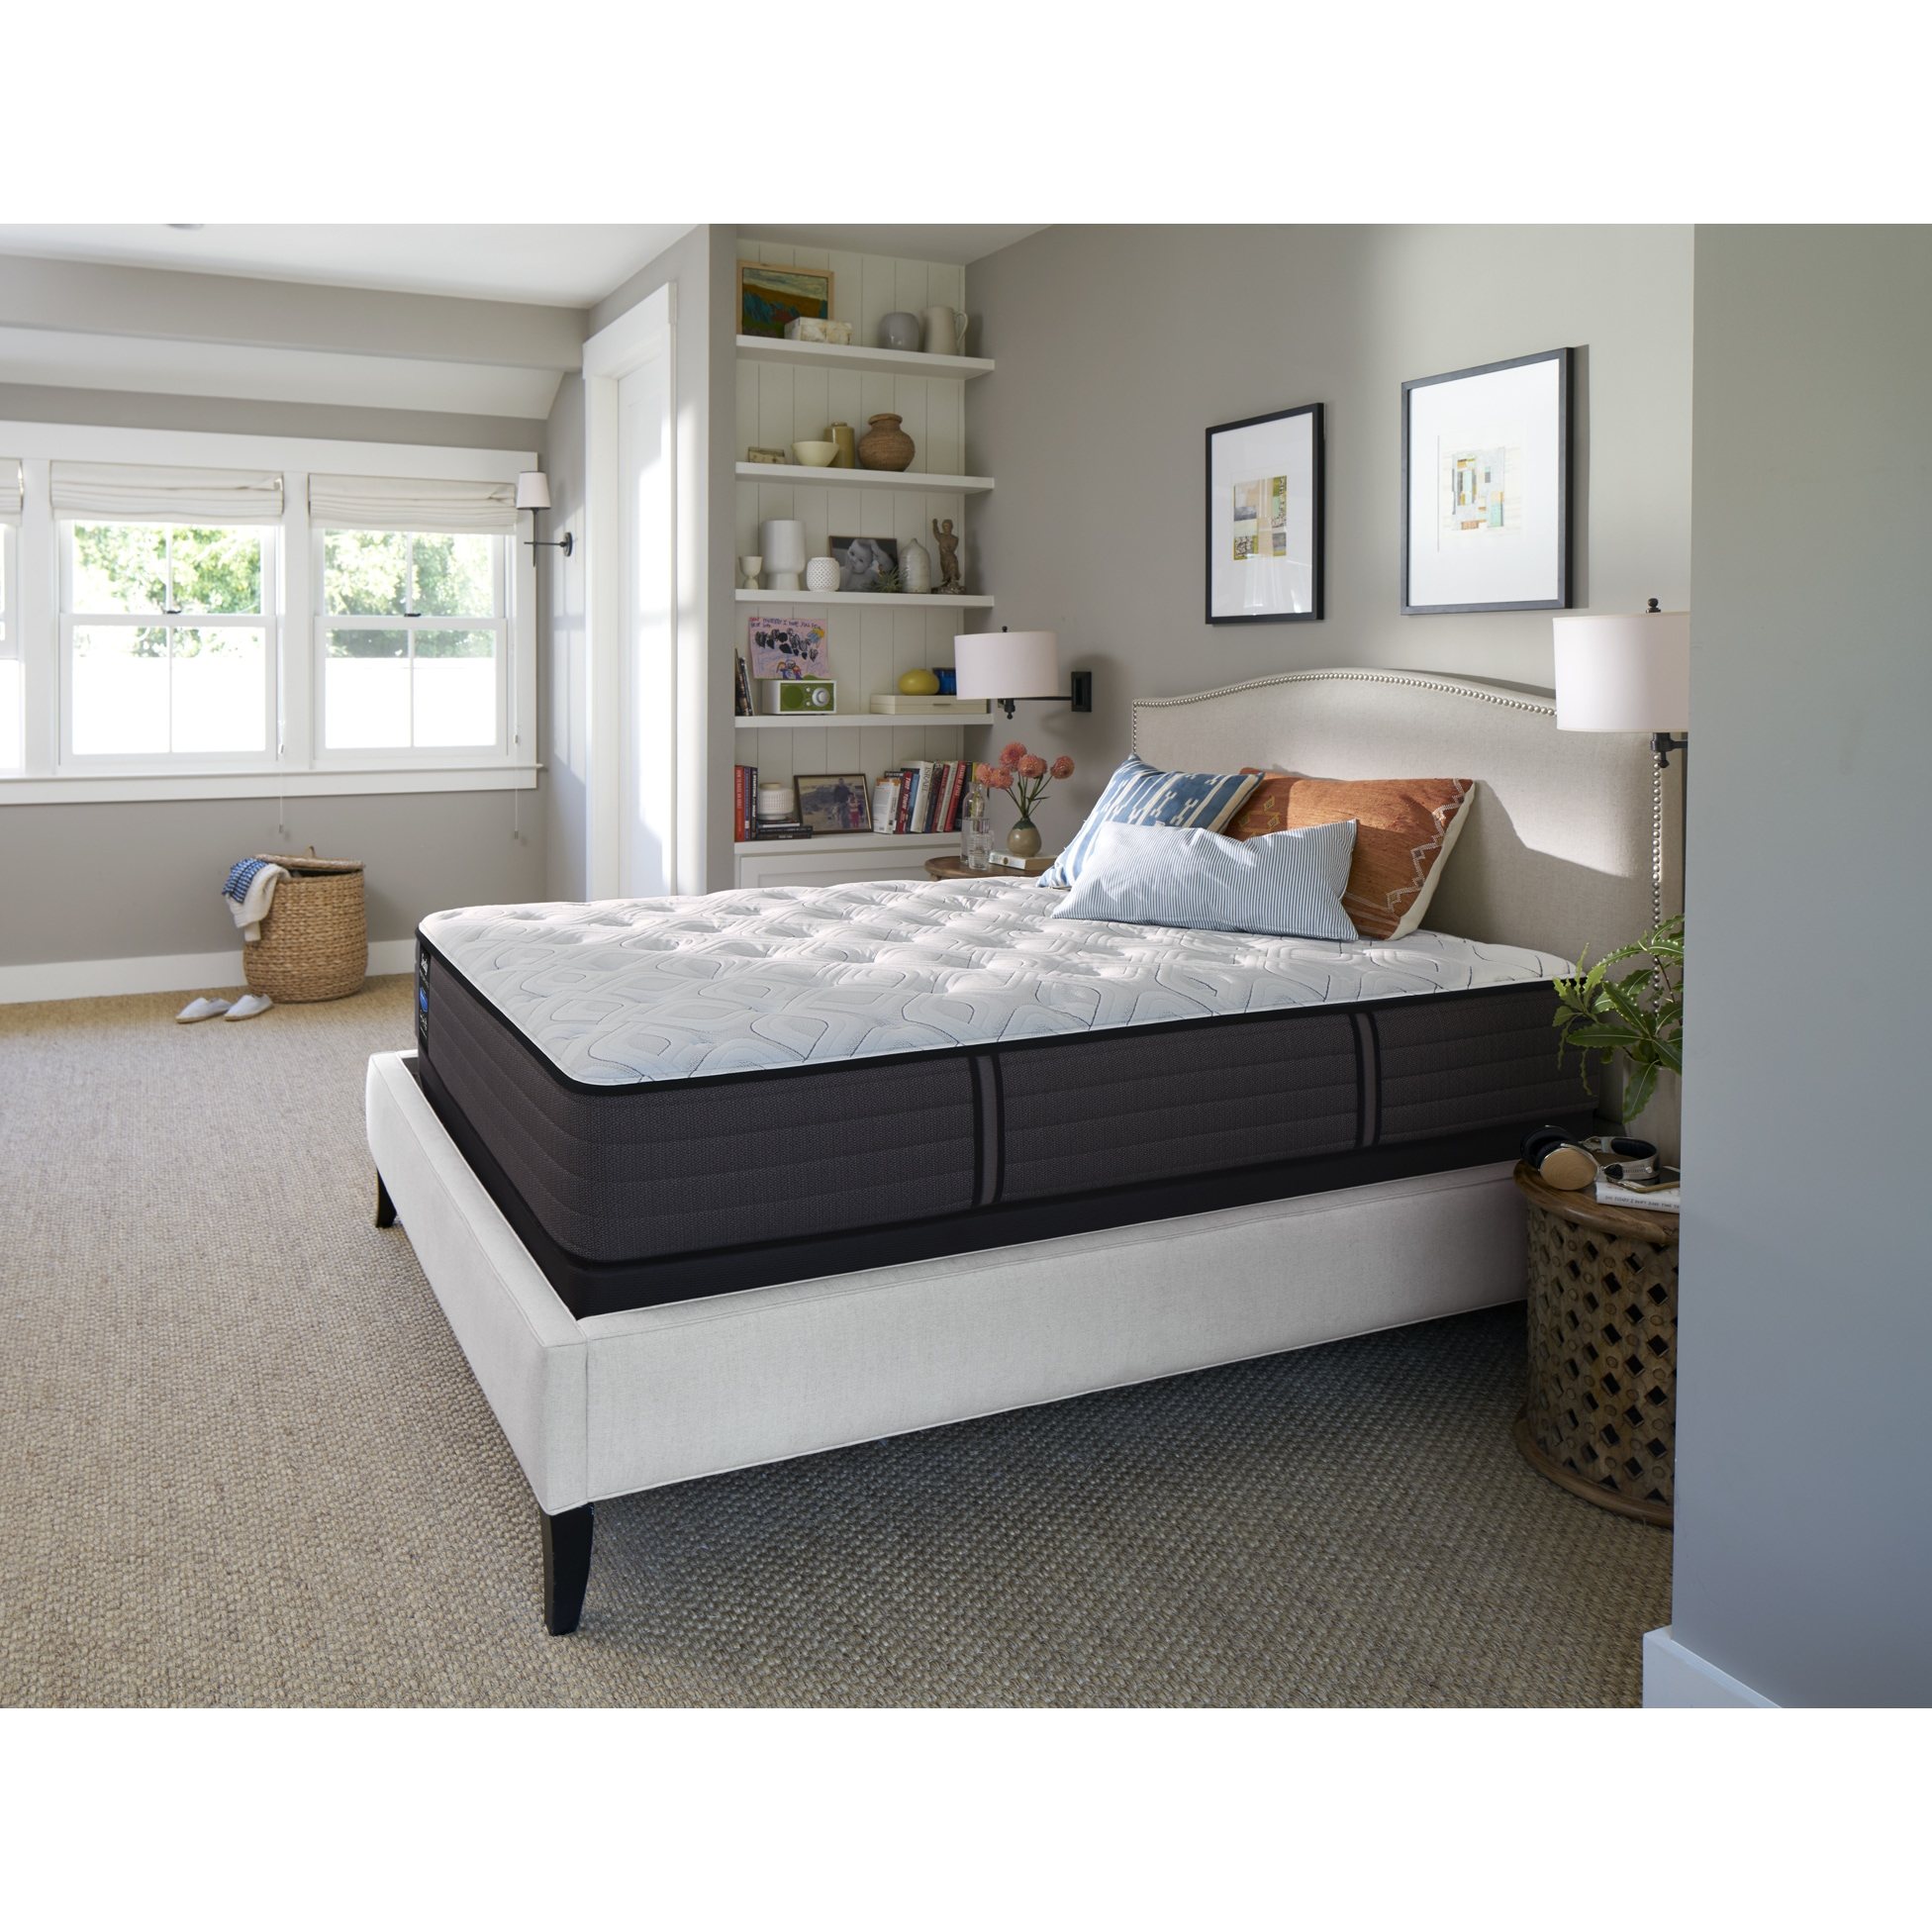 sealy response performance 12 5 inch cushion firm full size mattress